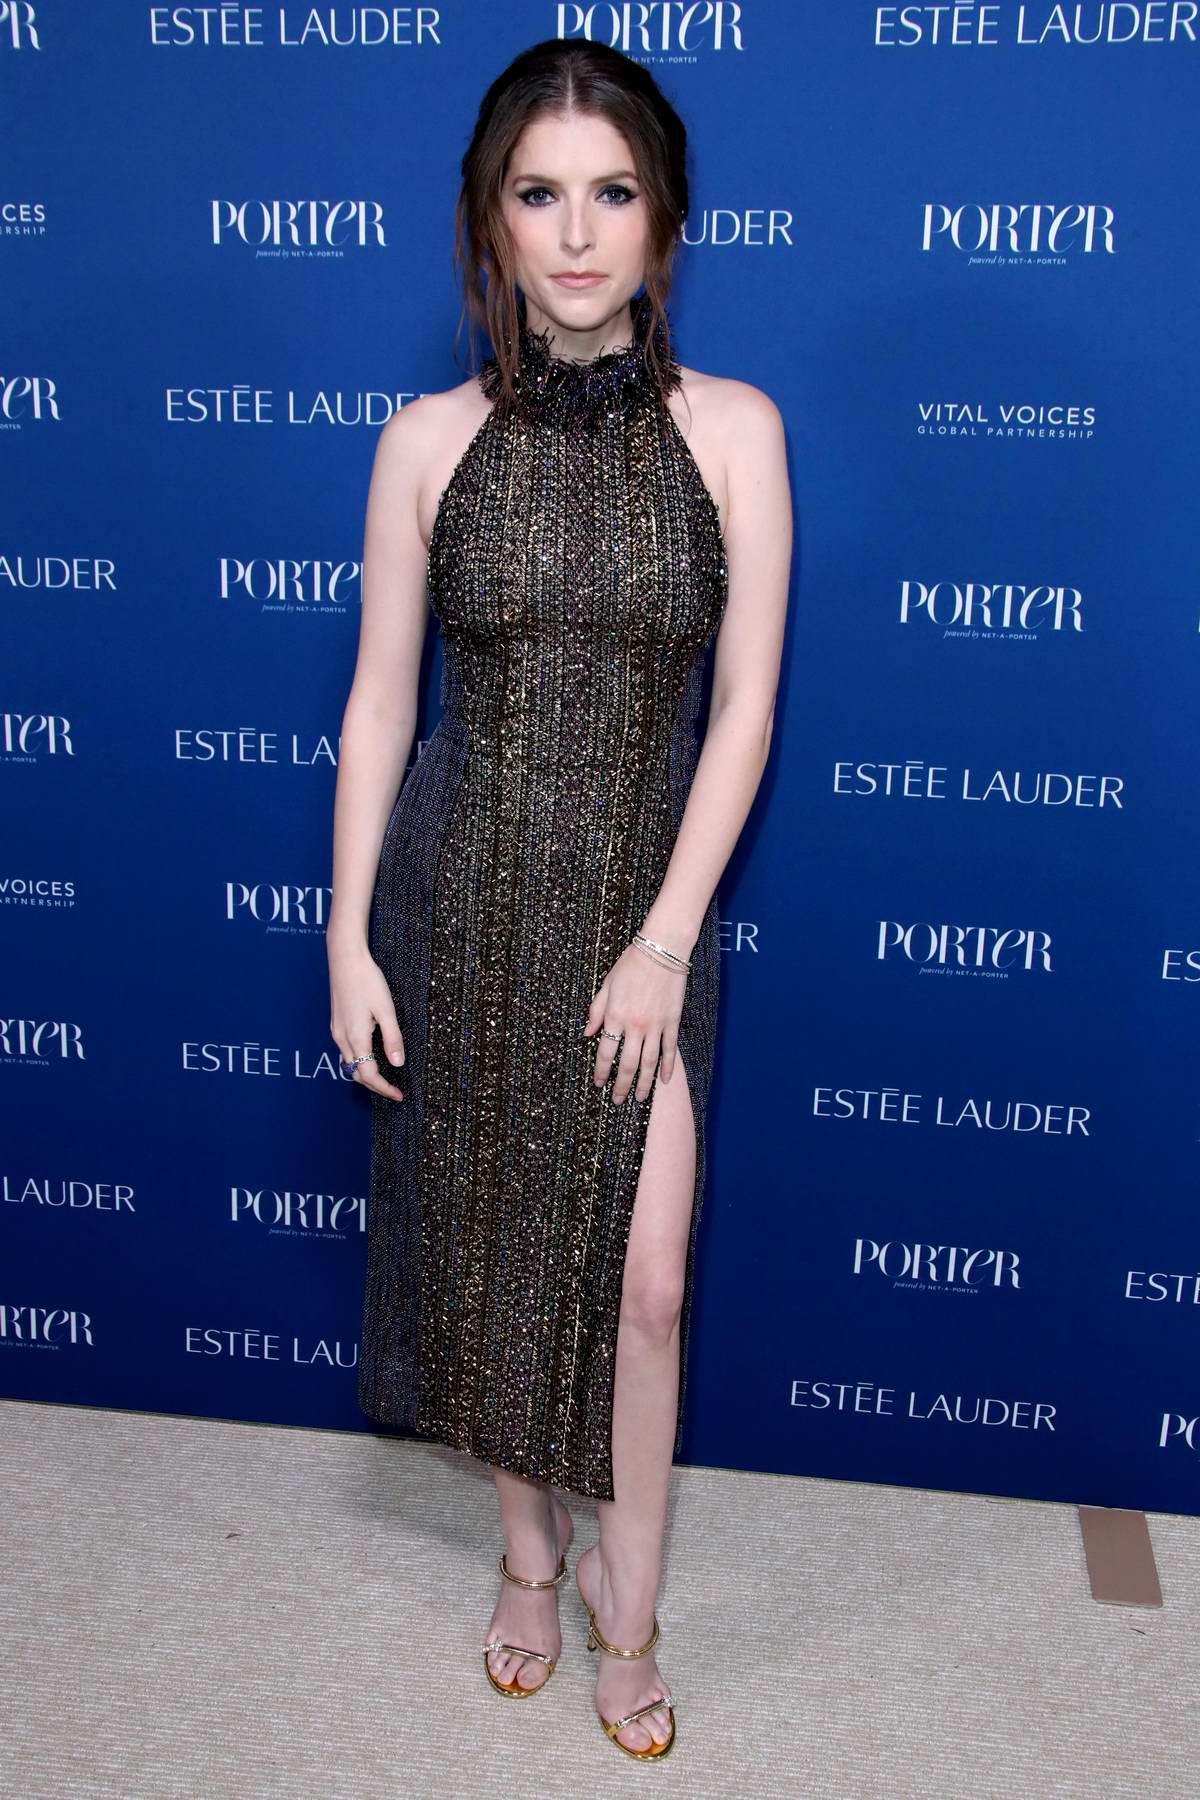 Anna Kendrick attends Porter's 3rd Annual Incredible Women Gala in Los Angeles